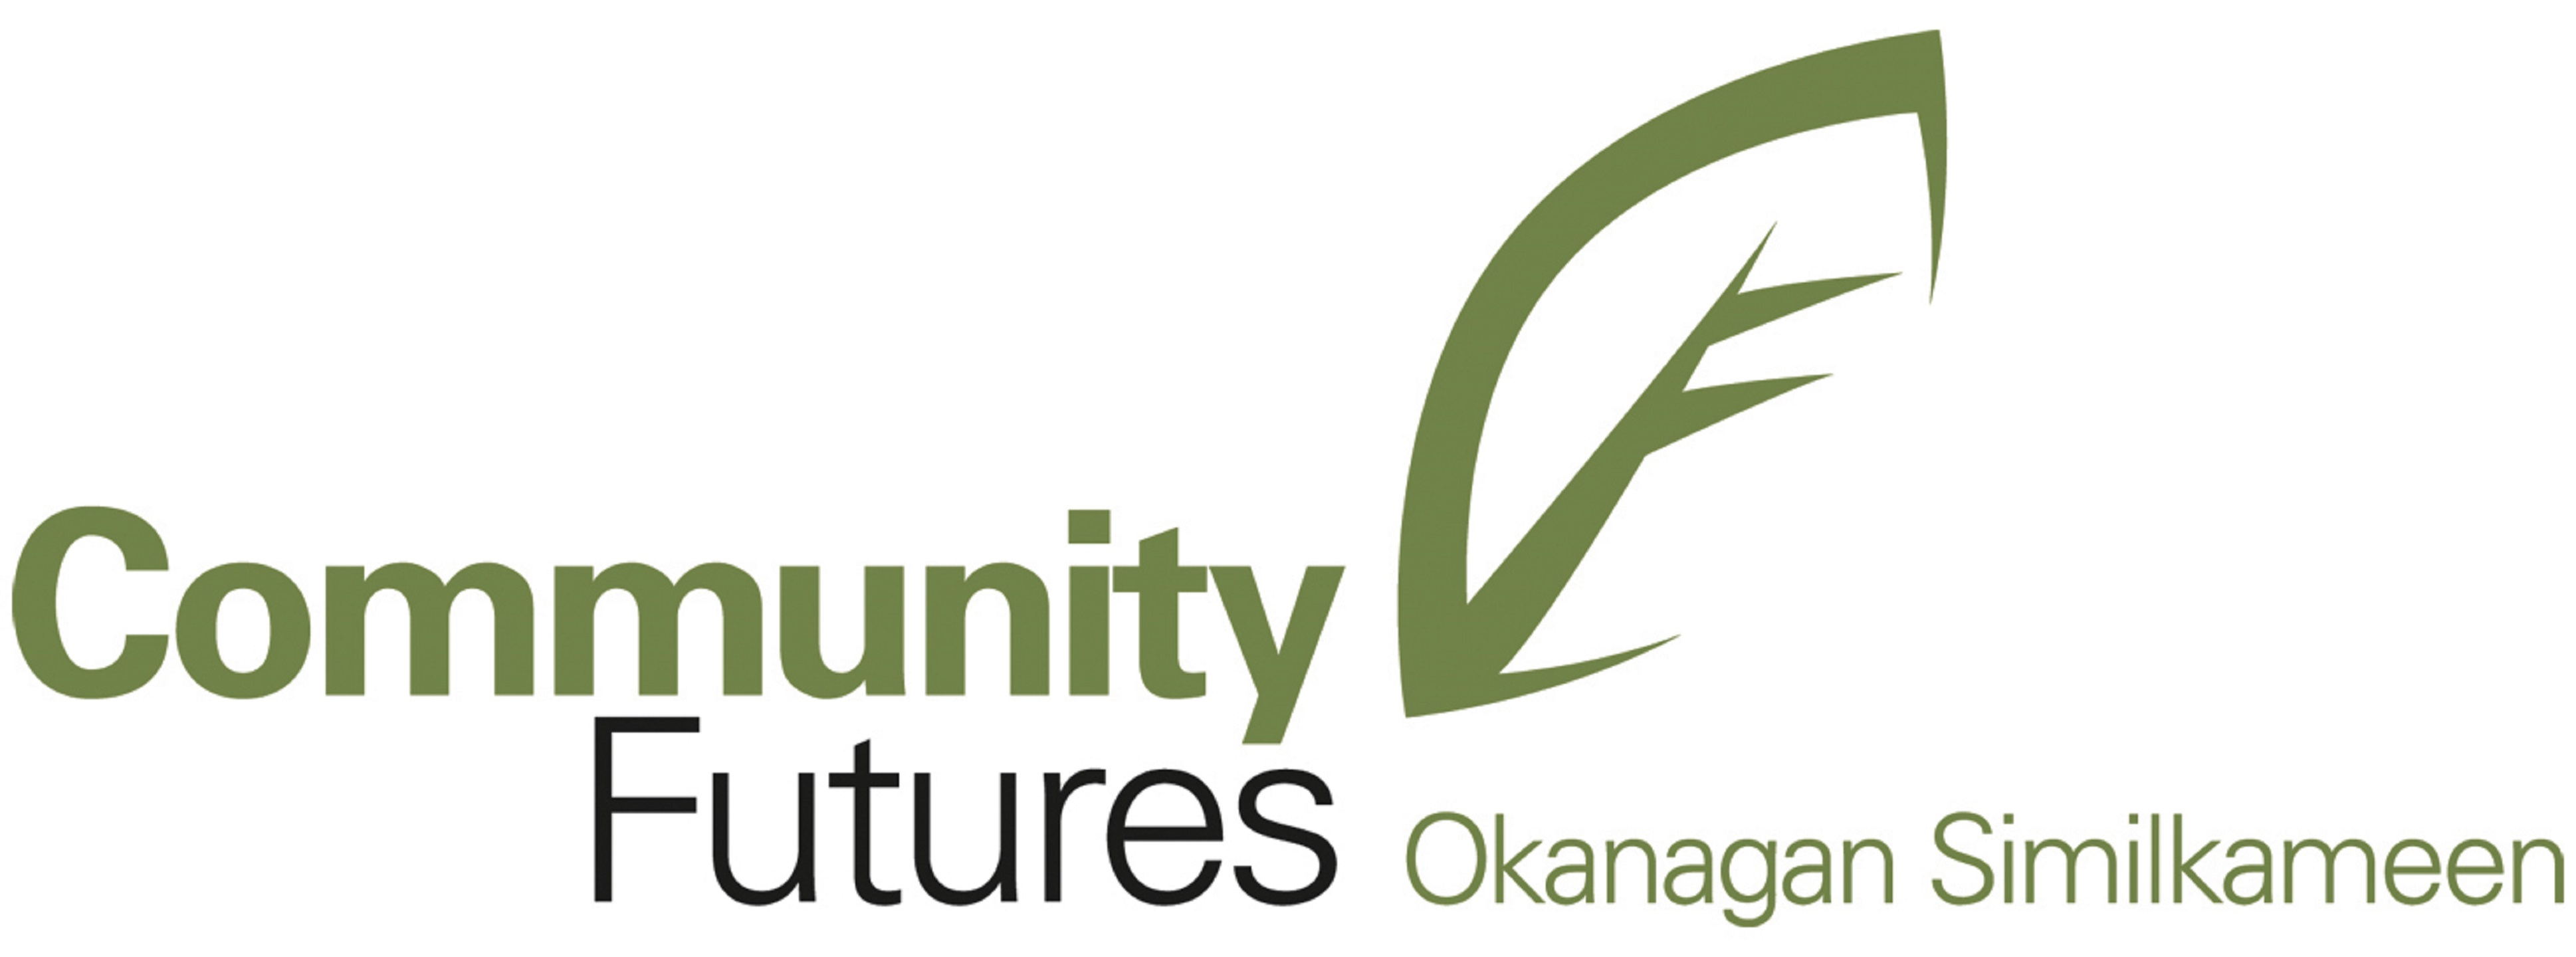 Community Futures Okanagan Similkameen Logo